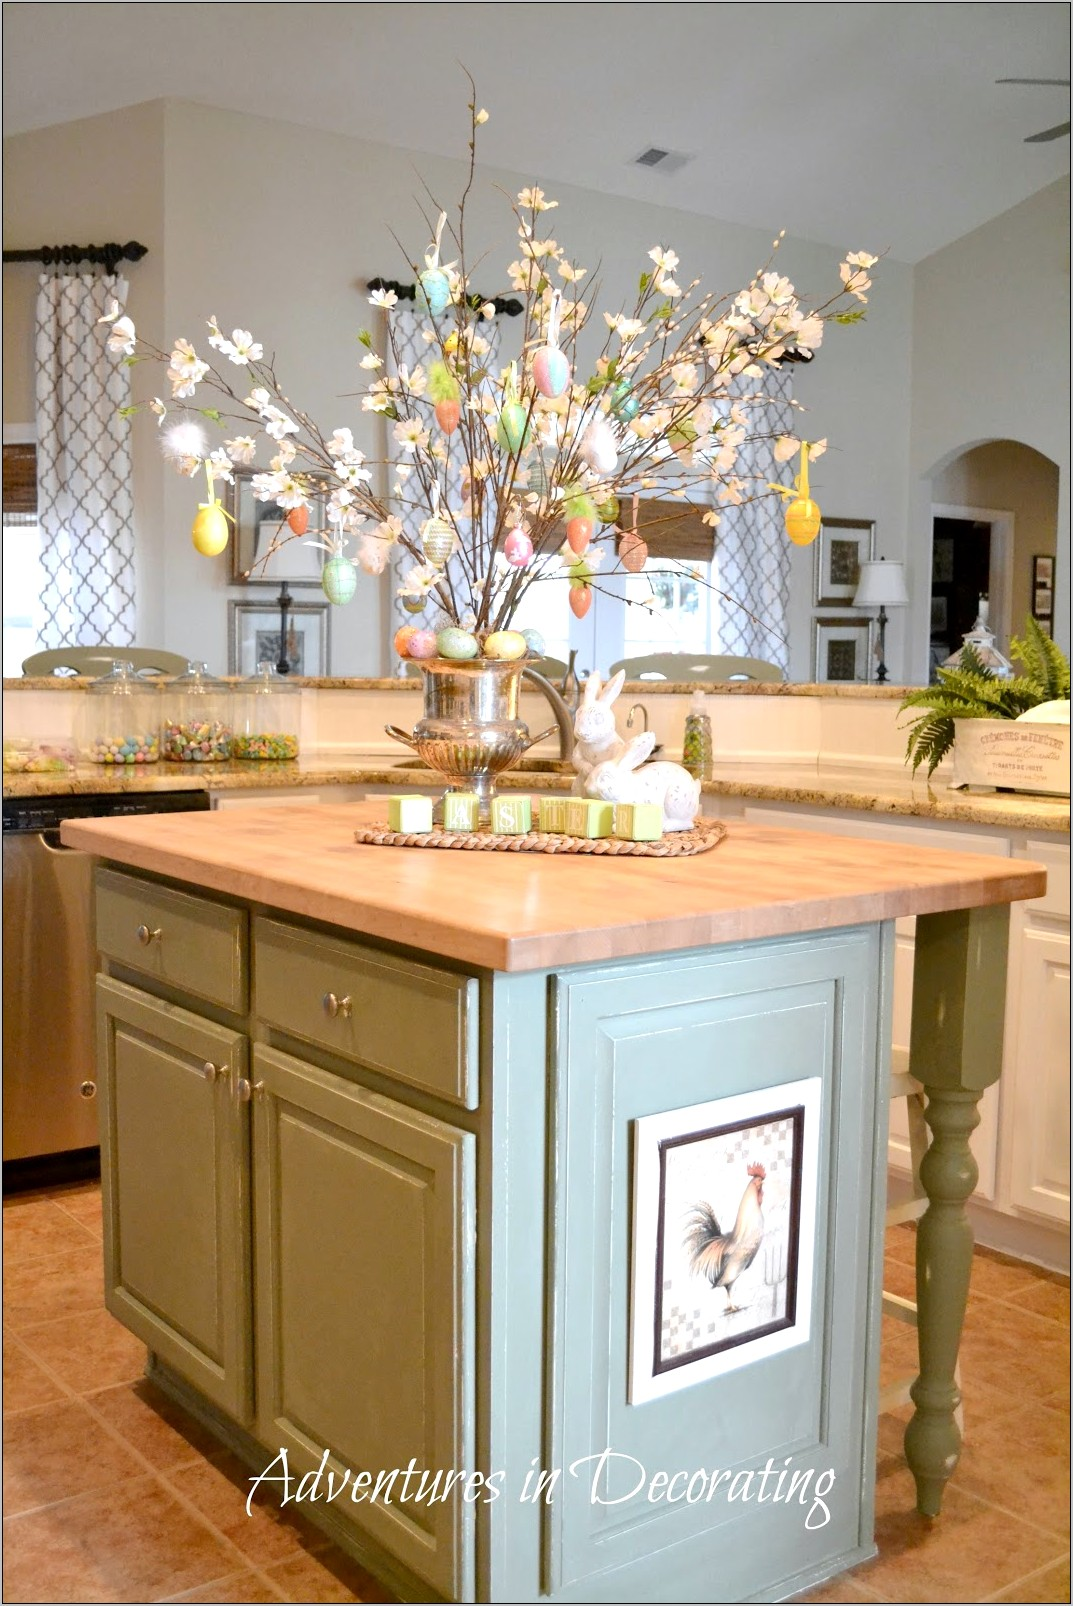 Easter Decorations Kitchen Cabinets